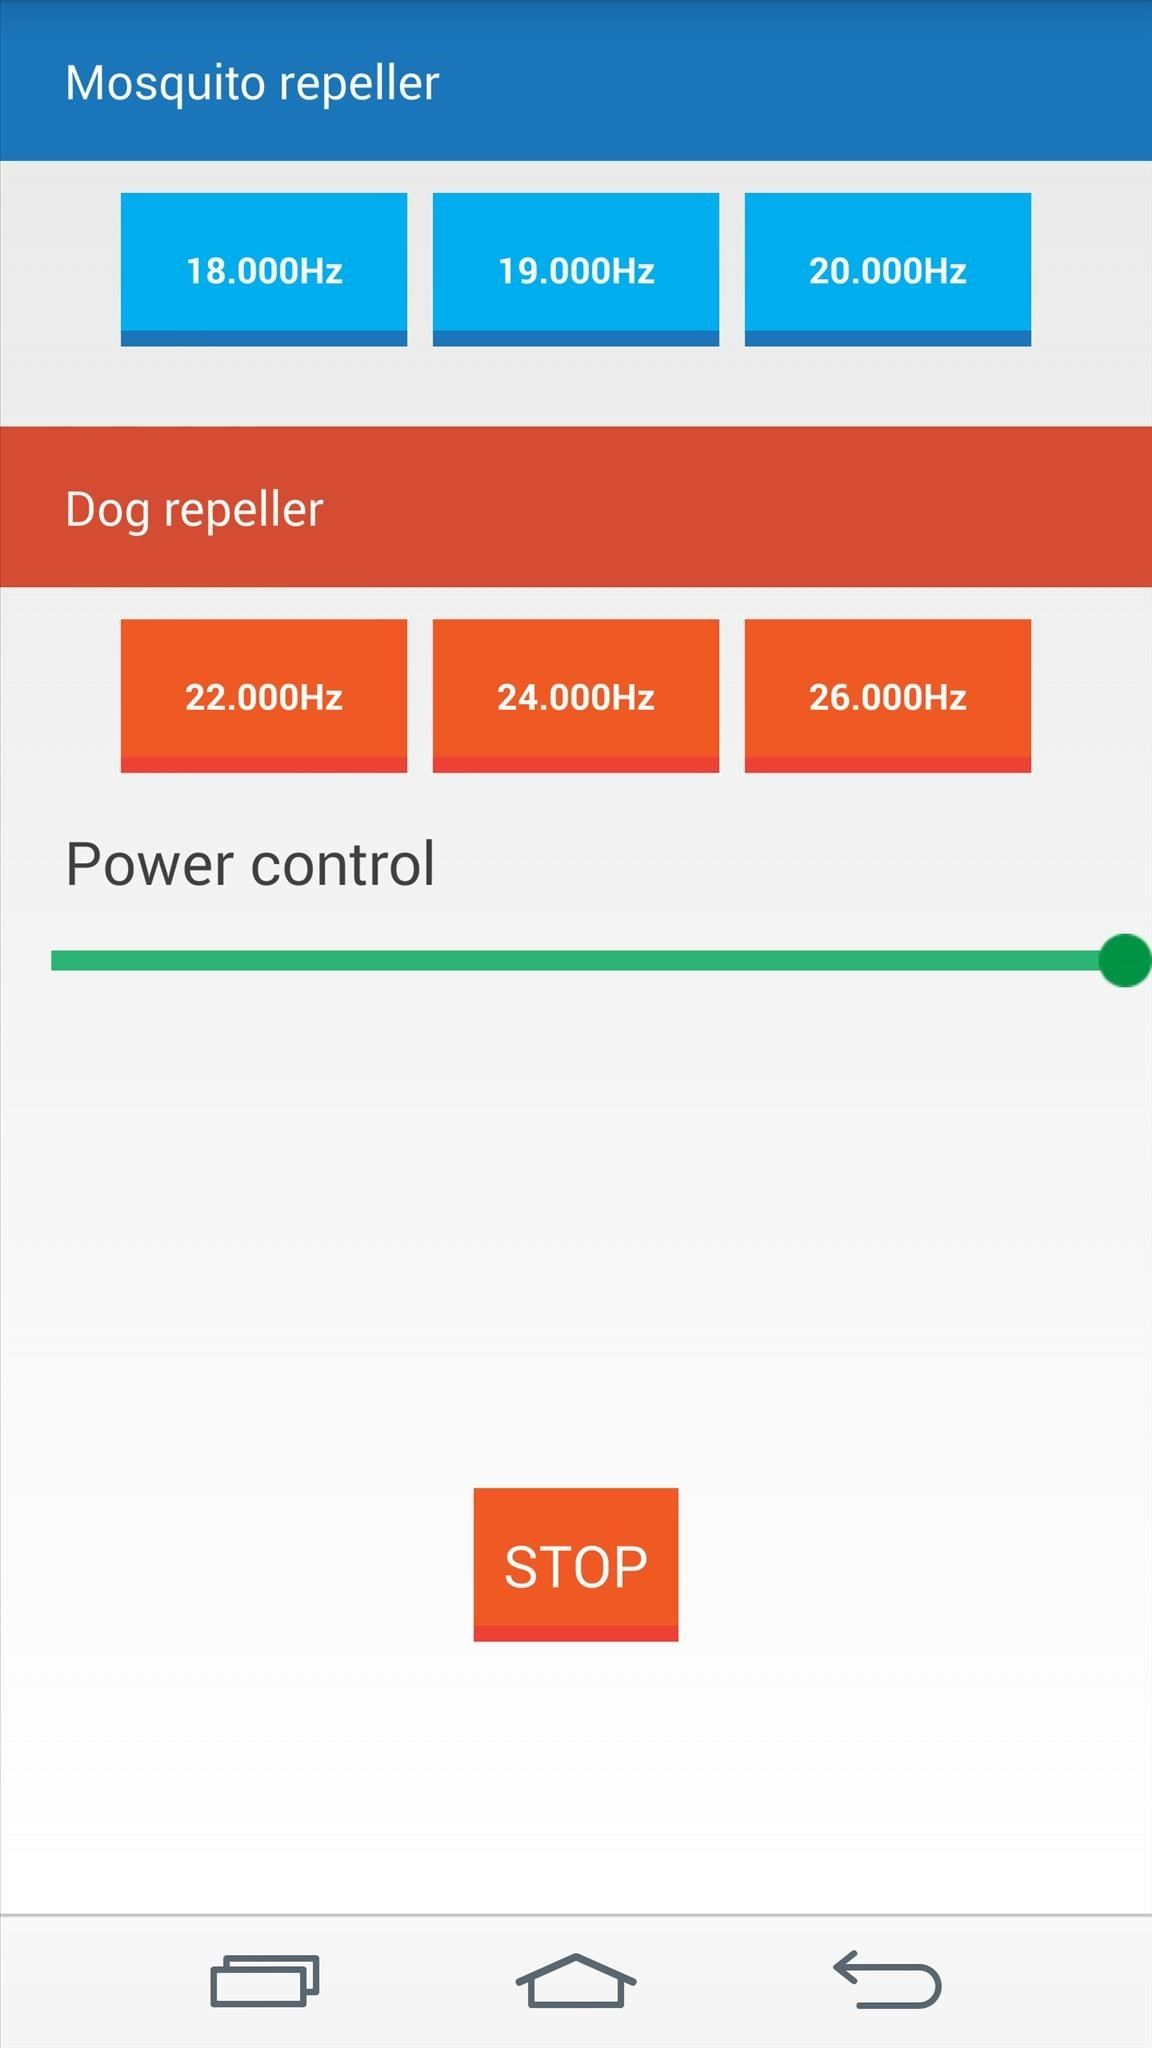 Repel Mosquitos, Dogs, & Annoying Friends with High-Frequency Tones on Android